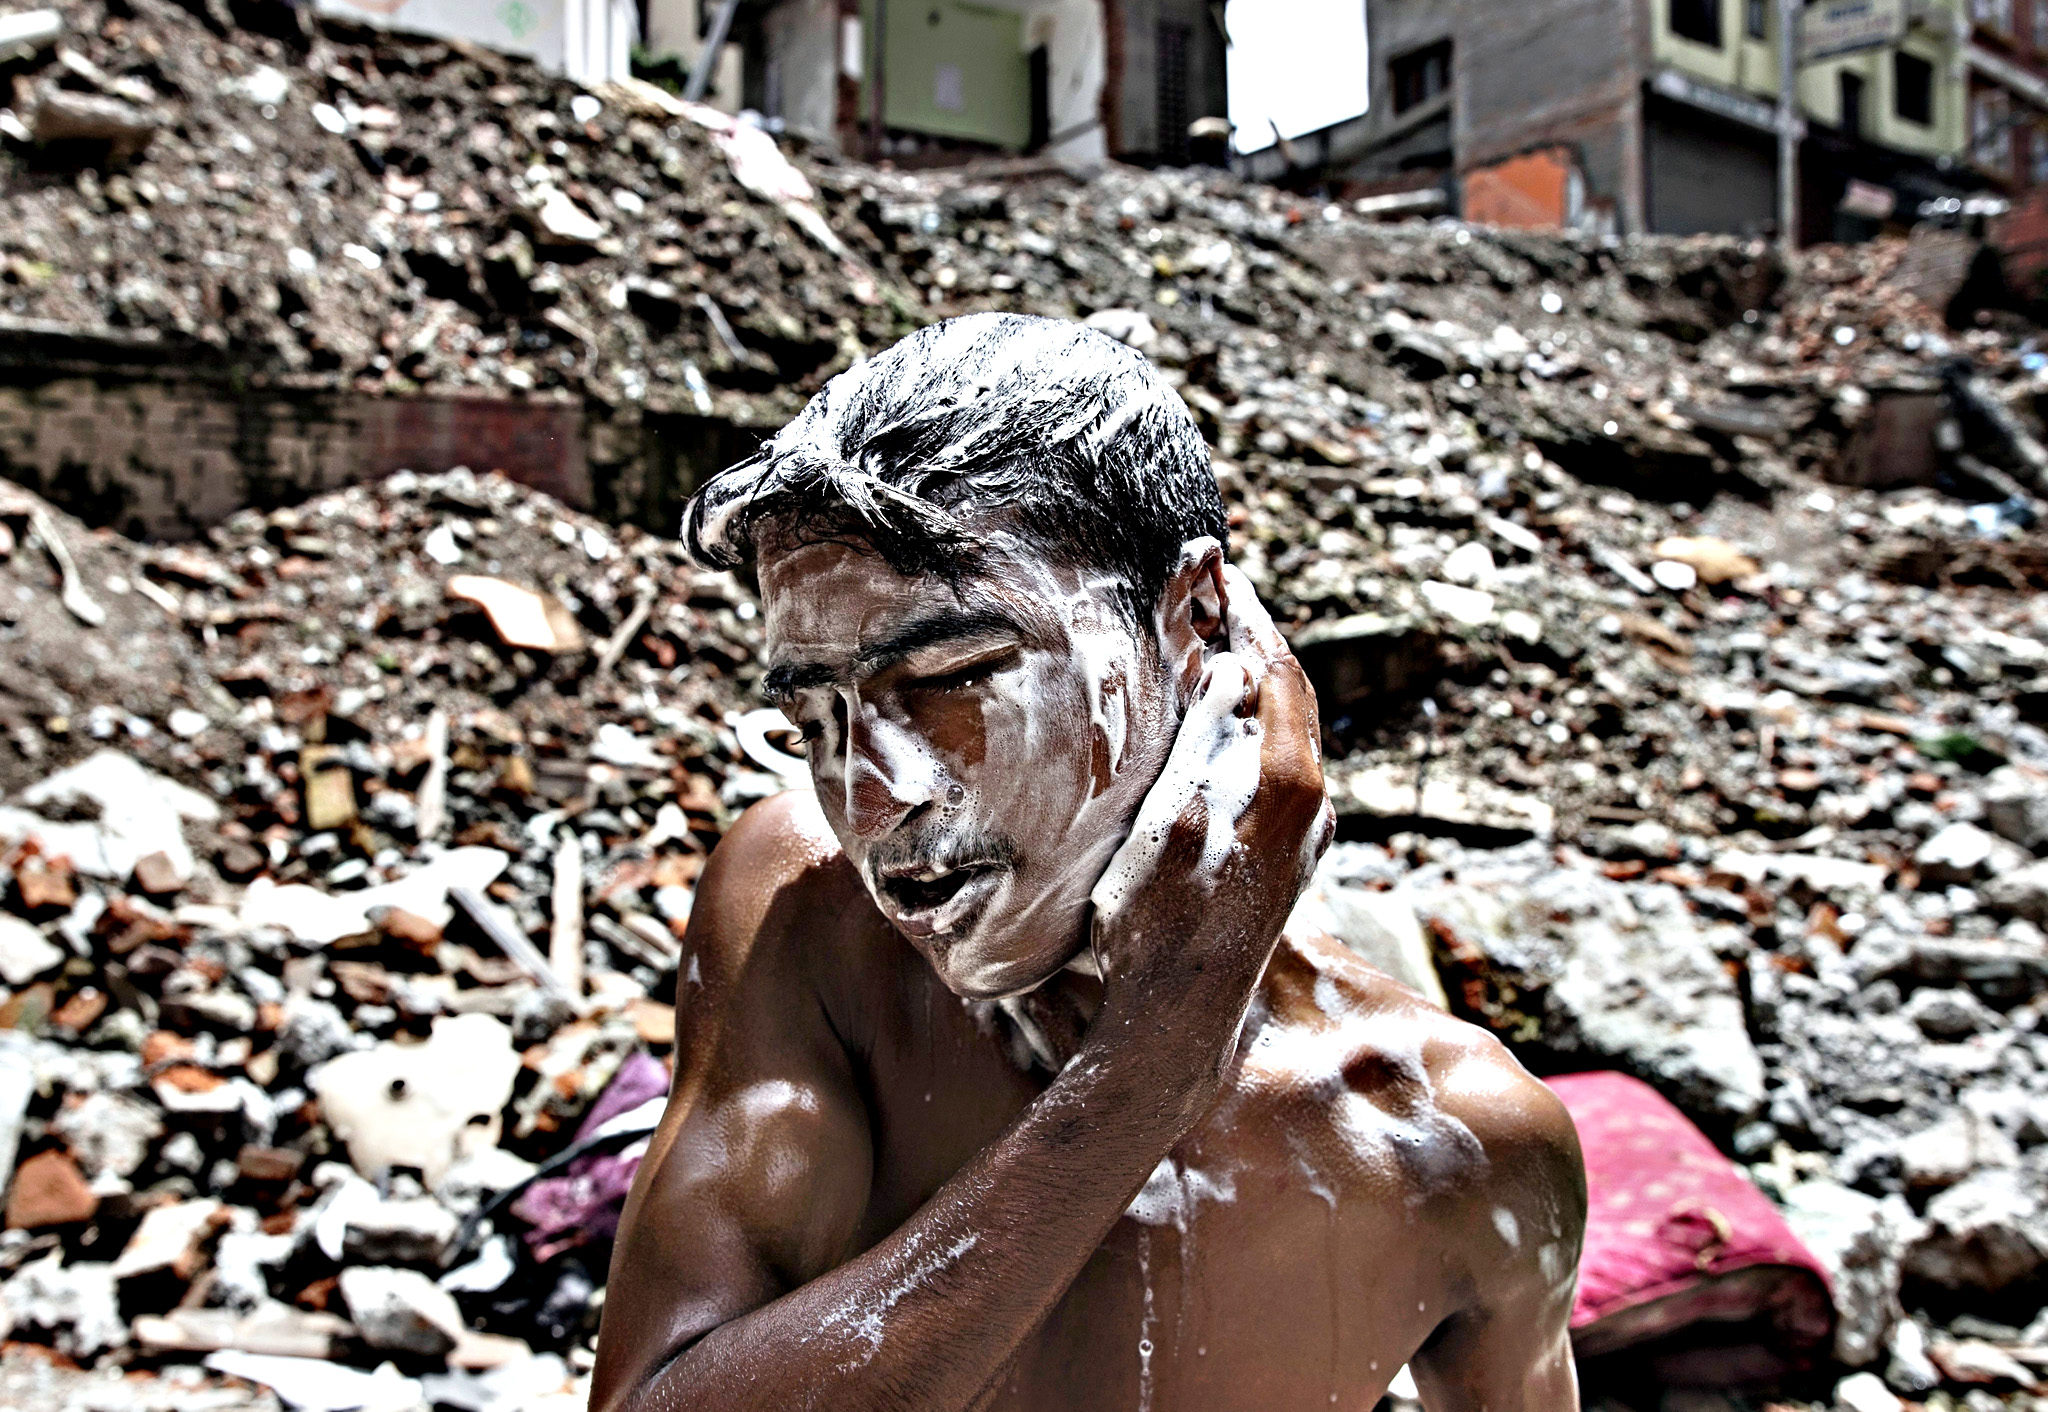 Nepalese boy Santosh Nepali, 15, washes himself at a damaged water spout in Thamel, Kathmandu, on Thursday. The historic spout was damaged during April earthquake